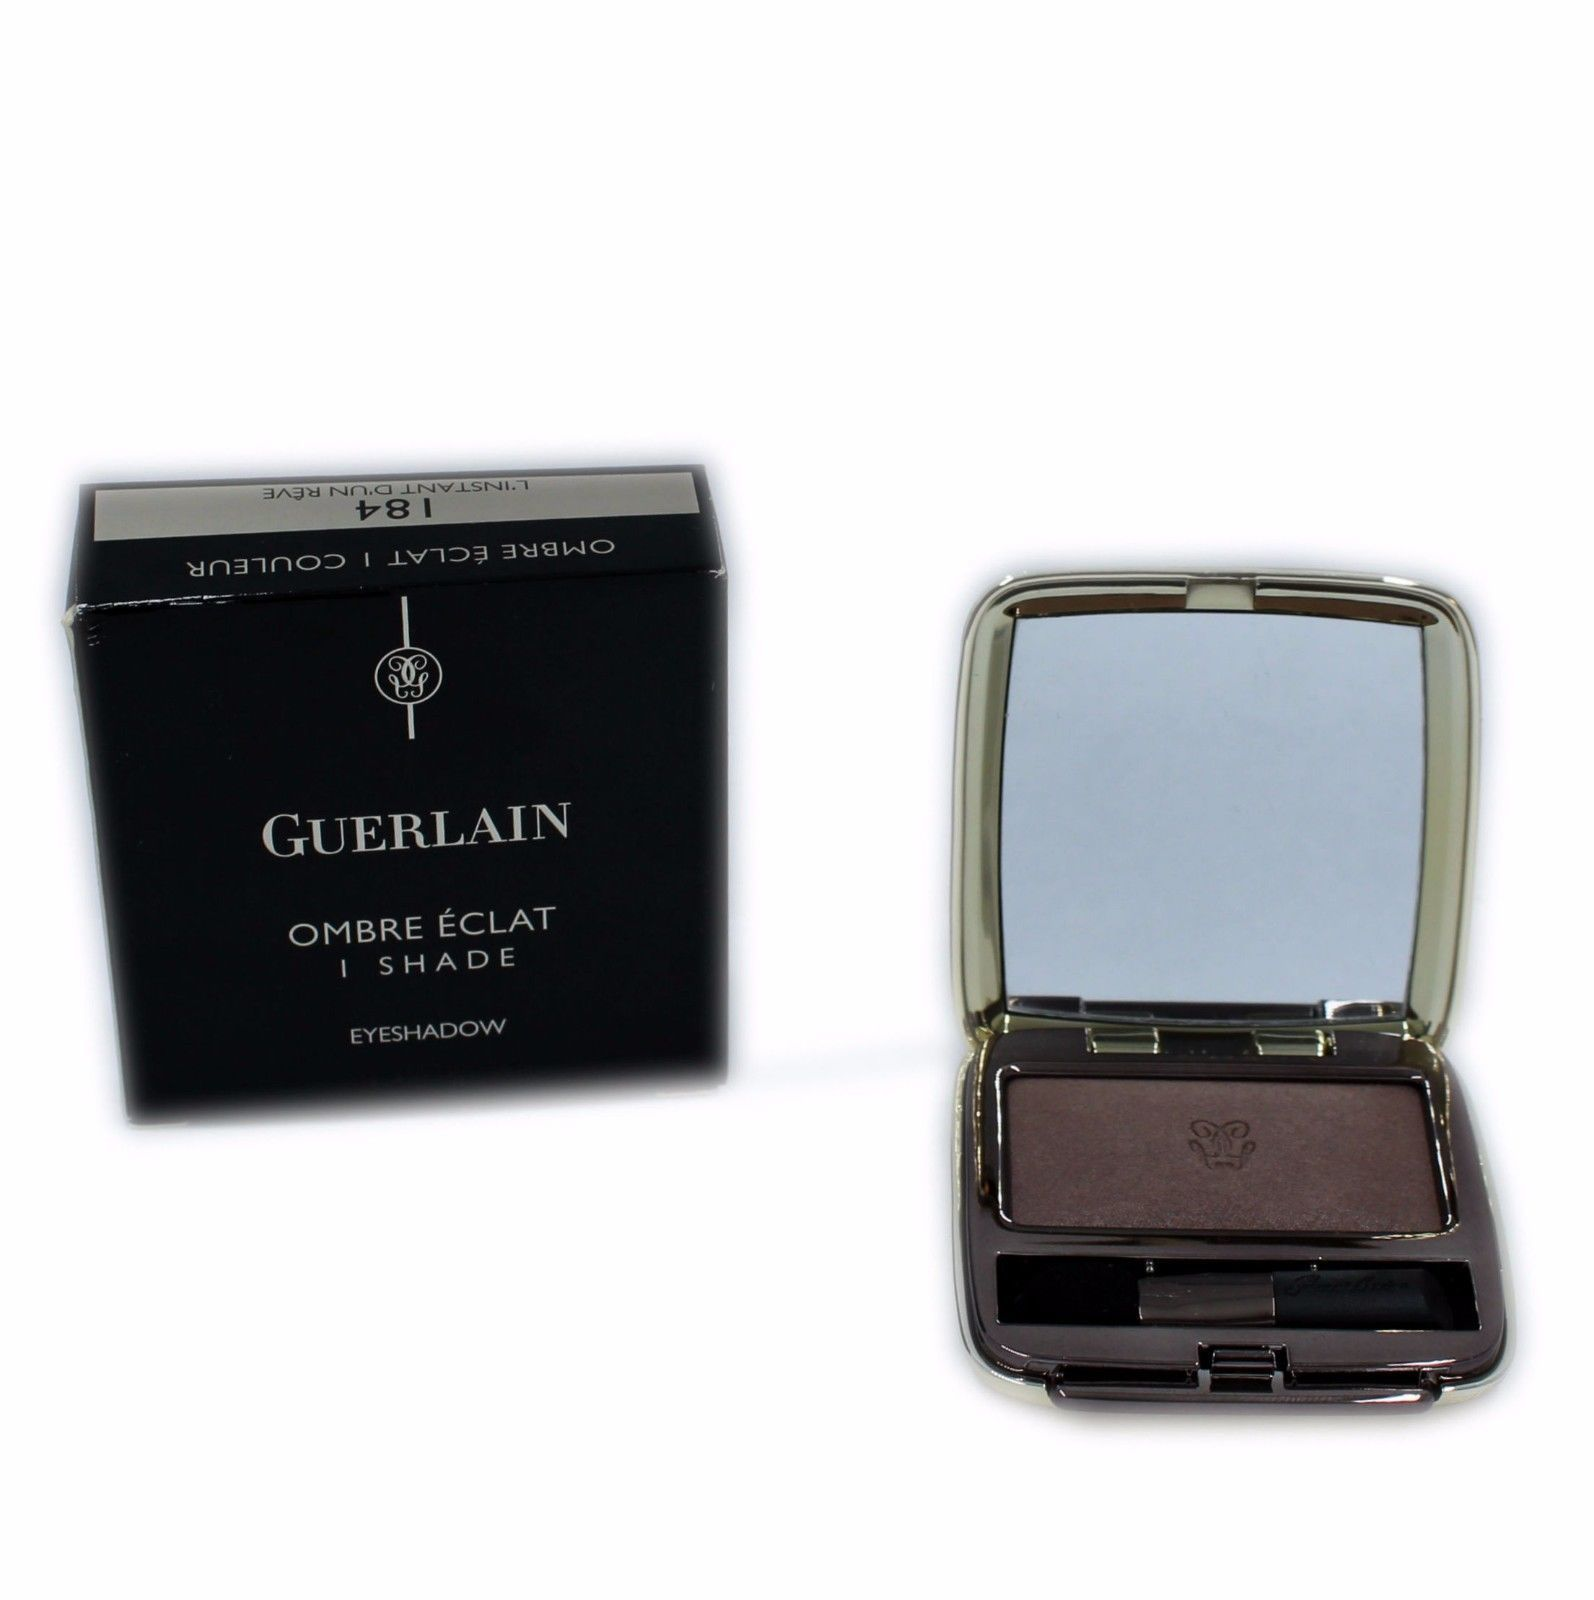 Primary image for GUERLAIN OMBRE ECLAT 1 SHADE EYESHADOW 3.6 G/0.12 OZ. #184 NEW-G40579